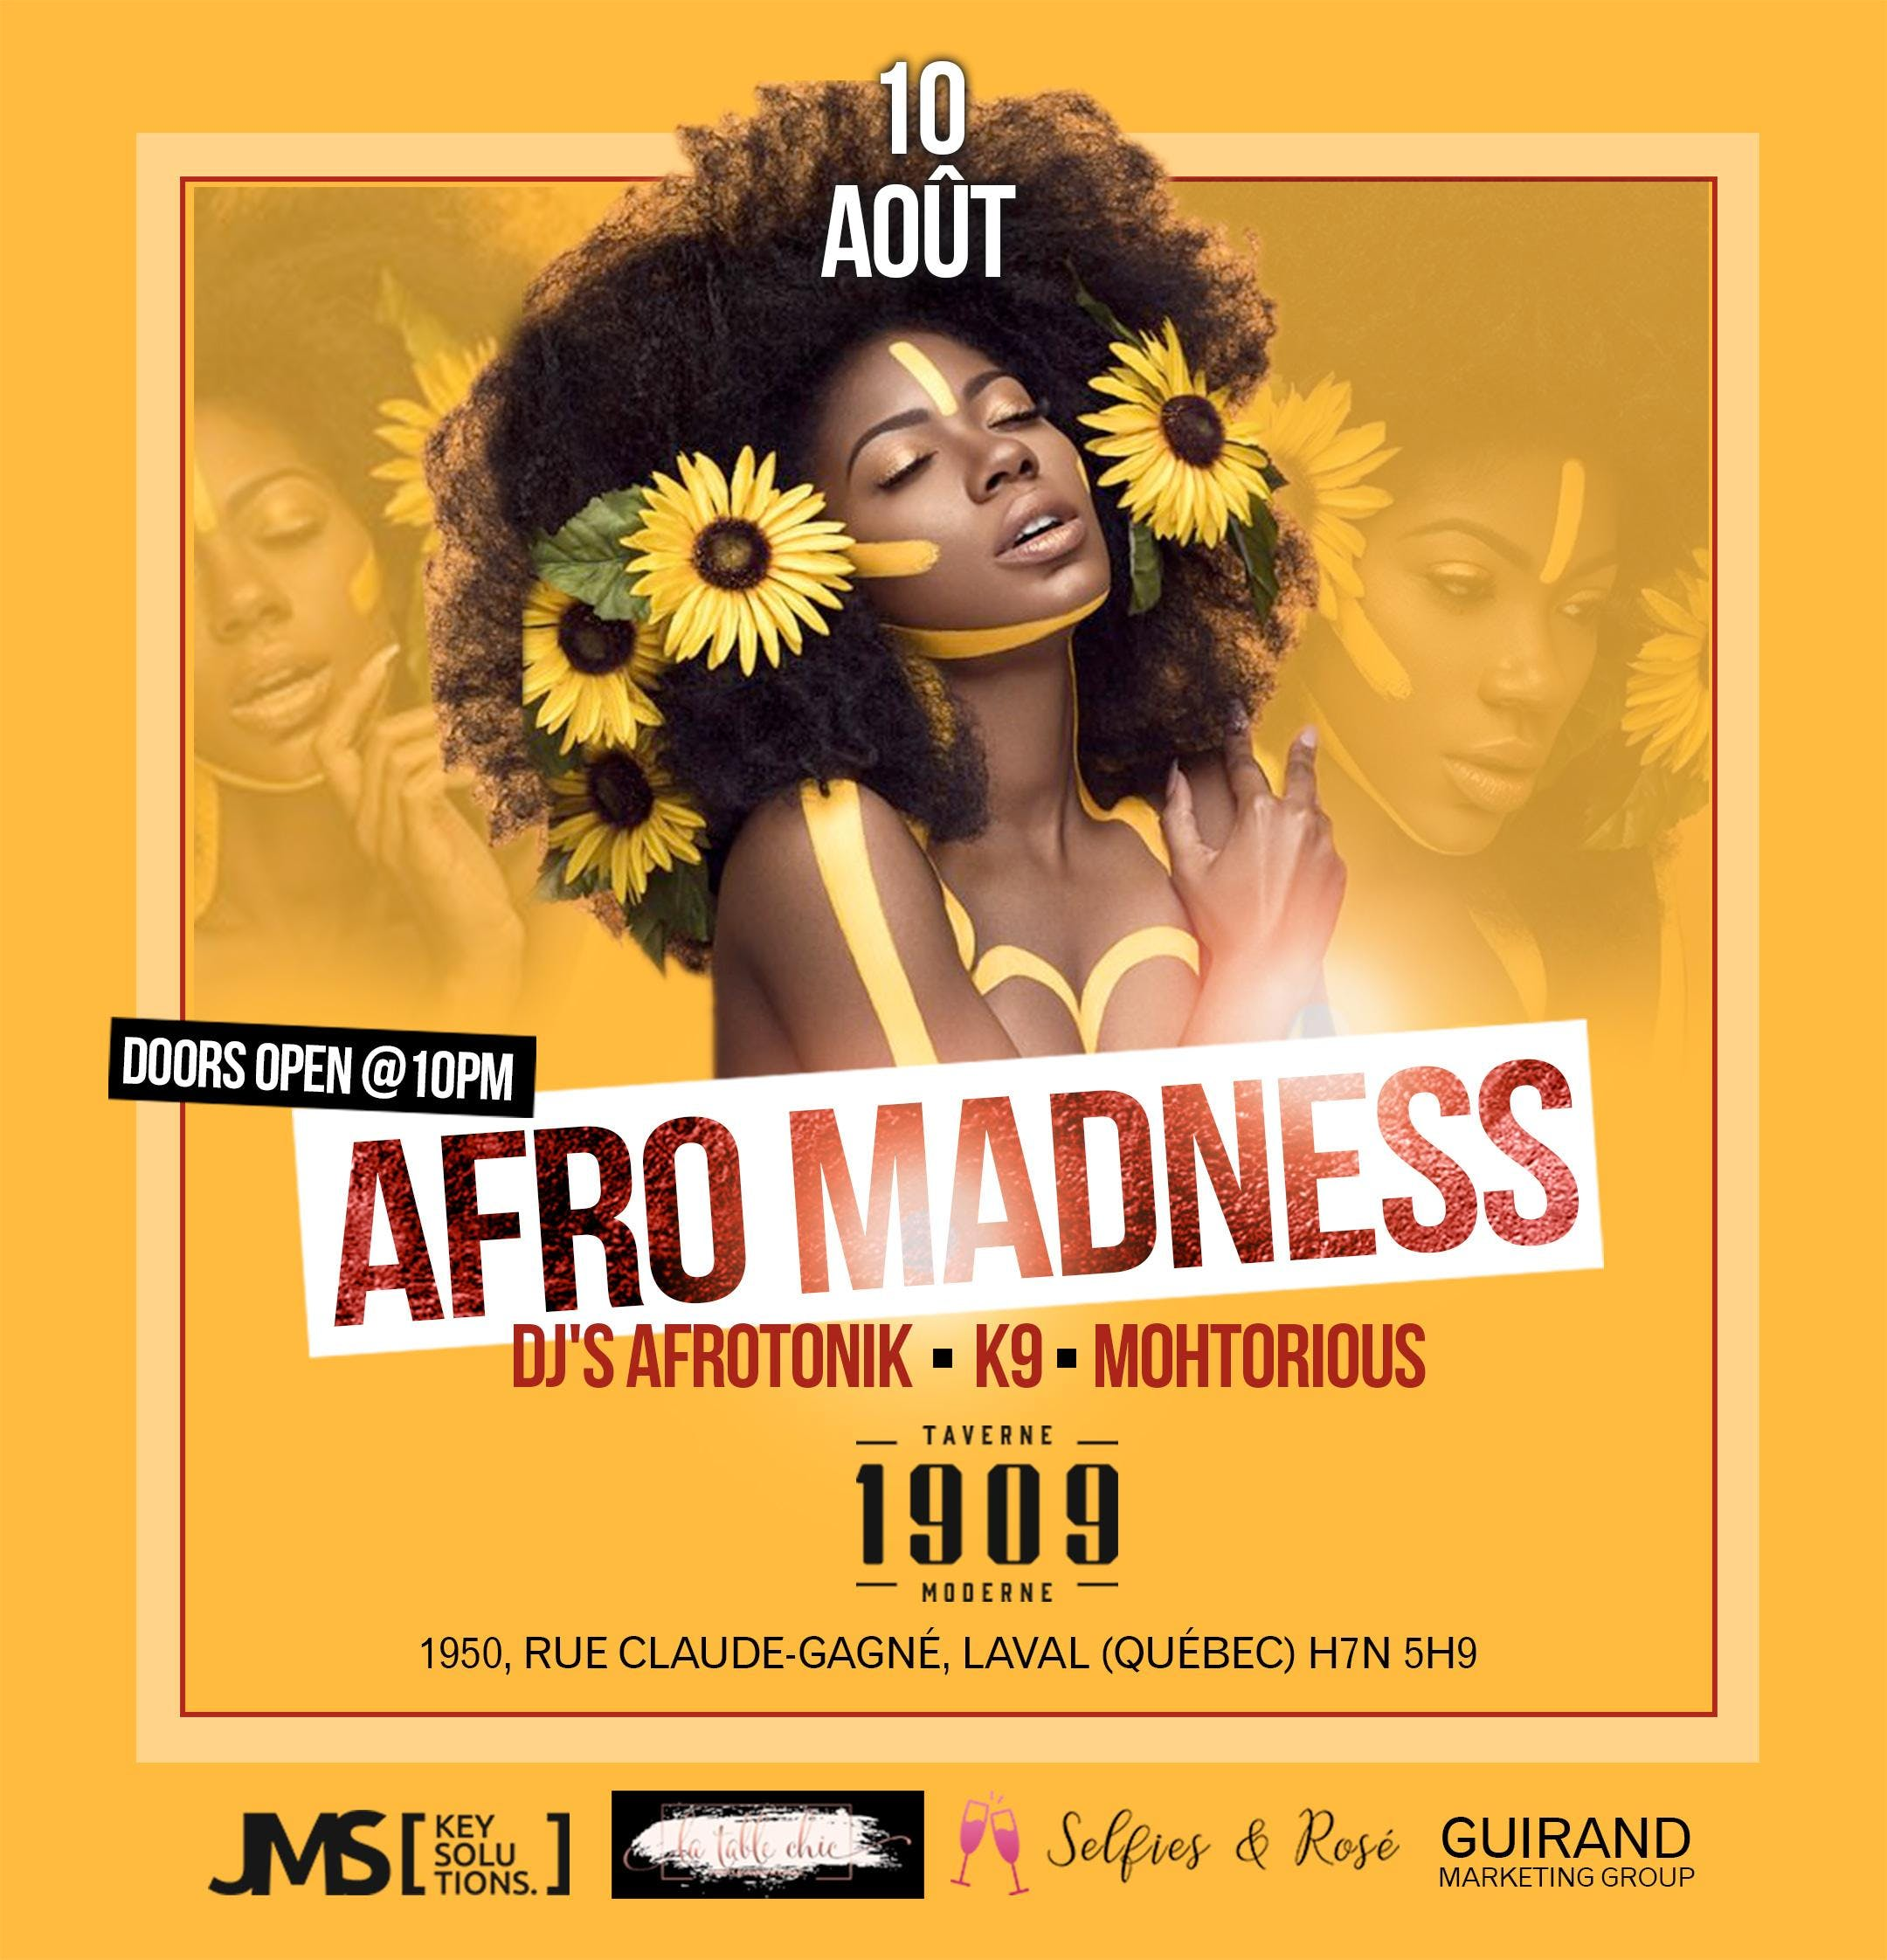 *AFRO MADNESS*